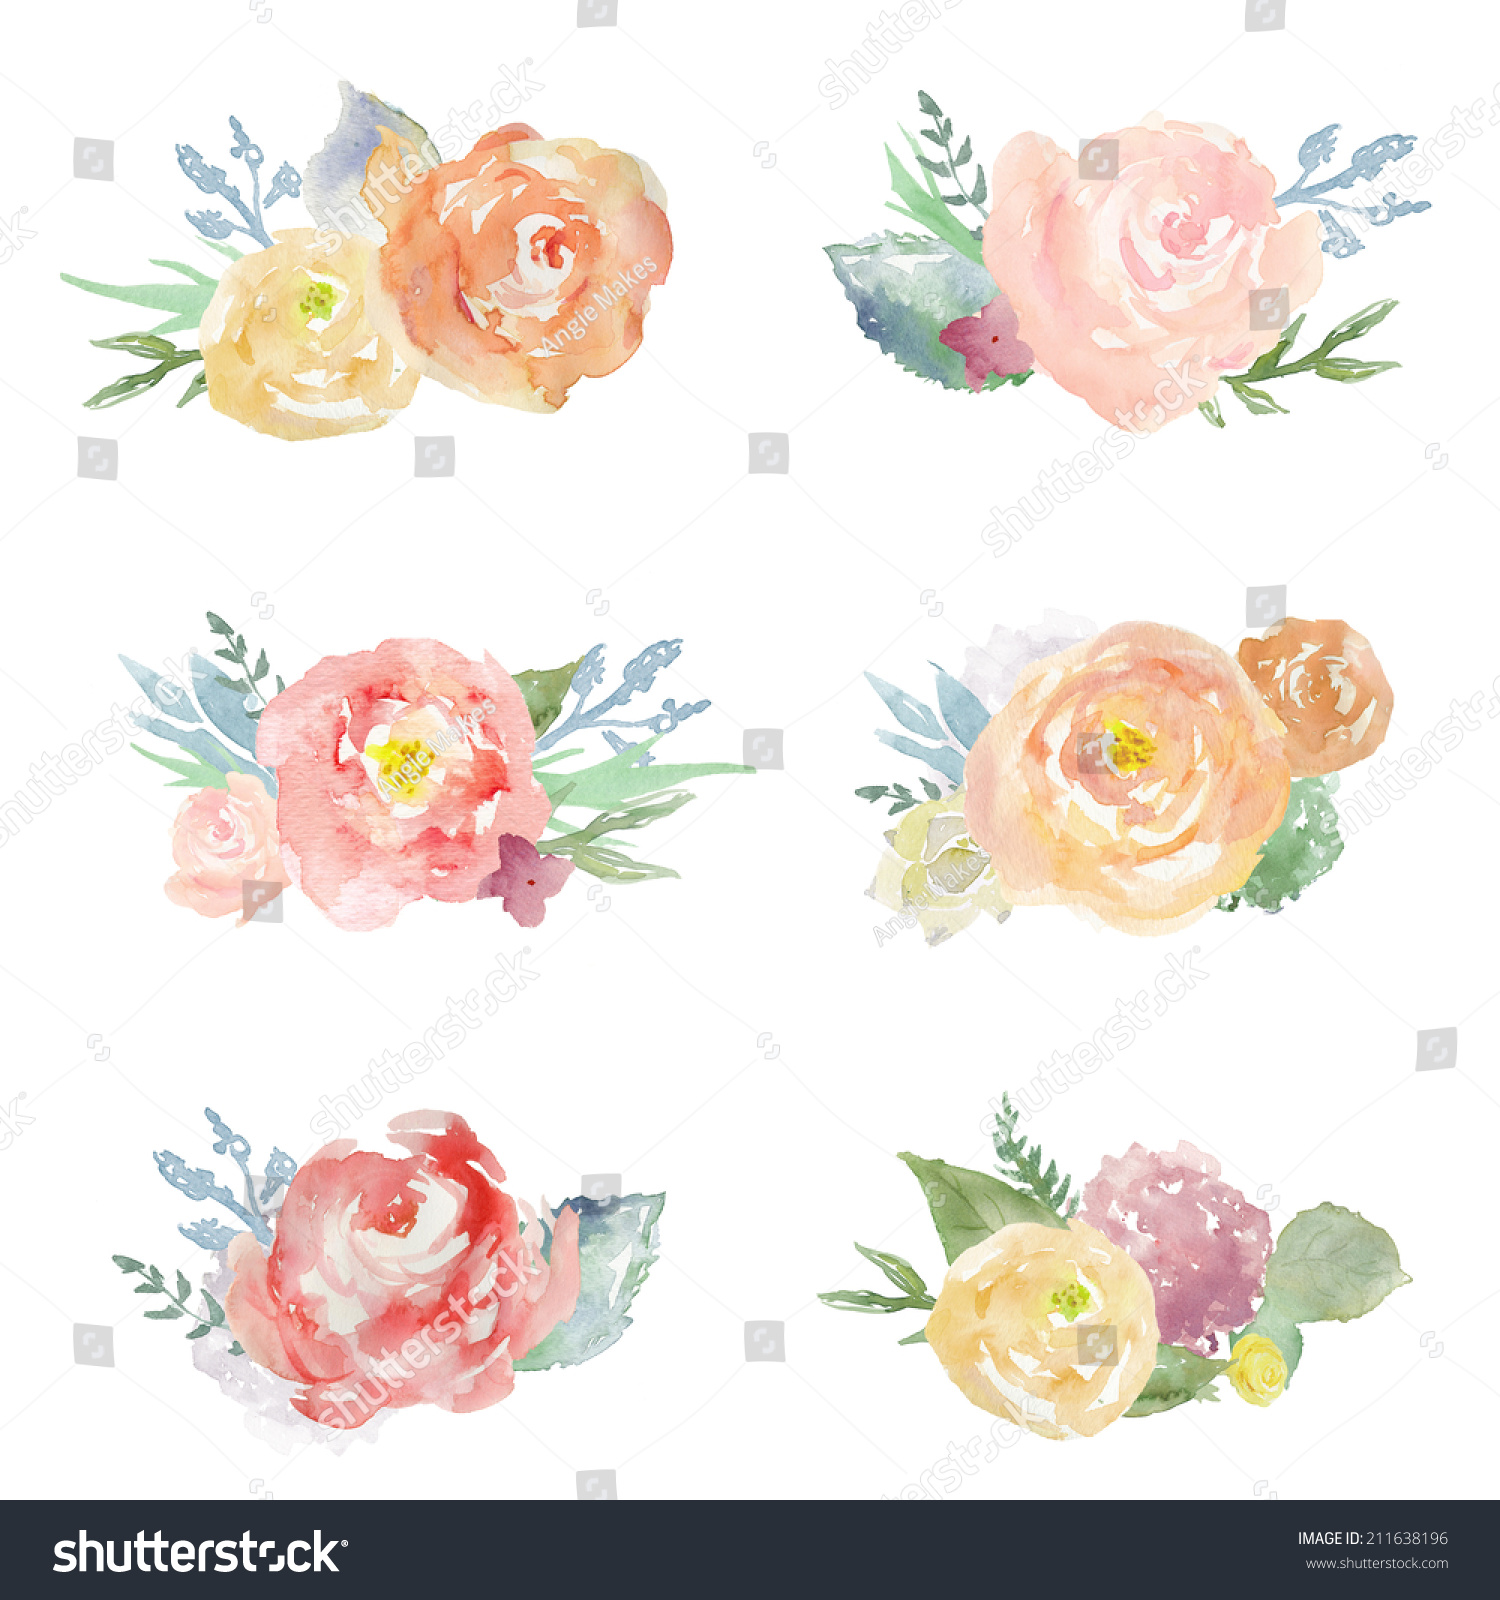 Watercolor Pastel Flowers to Pin on Pinterest PinsDaddy